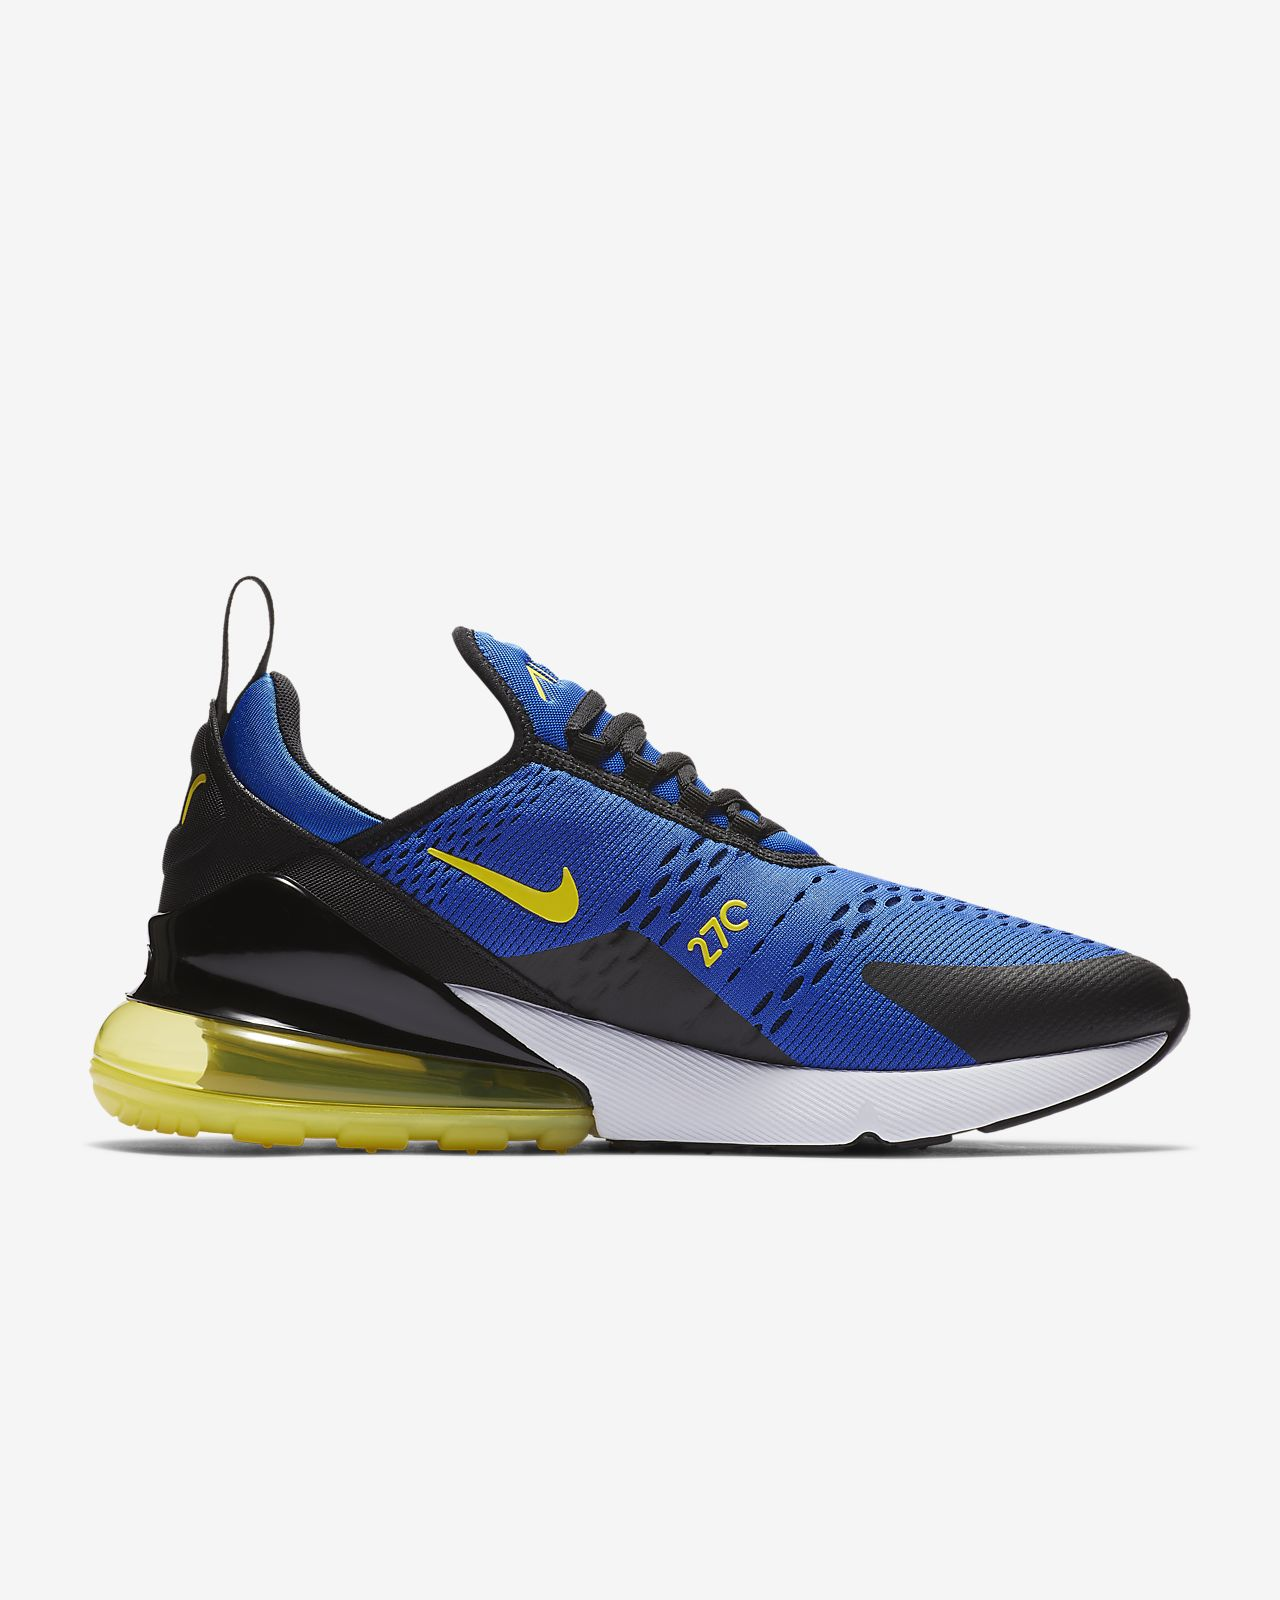 reputable site fab19 ed2b2 ... Nike Air Max 270 Mens Shoe